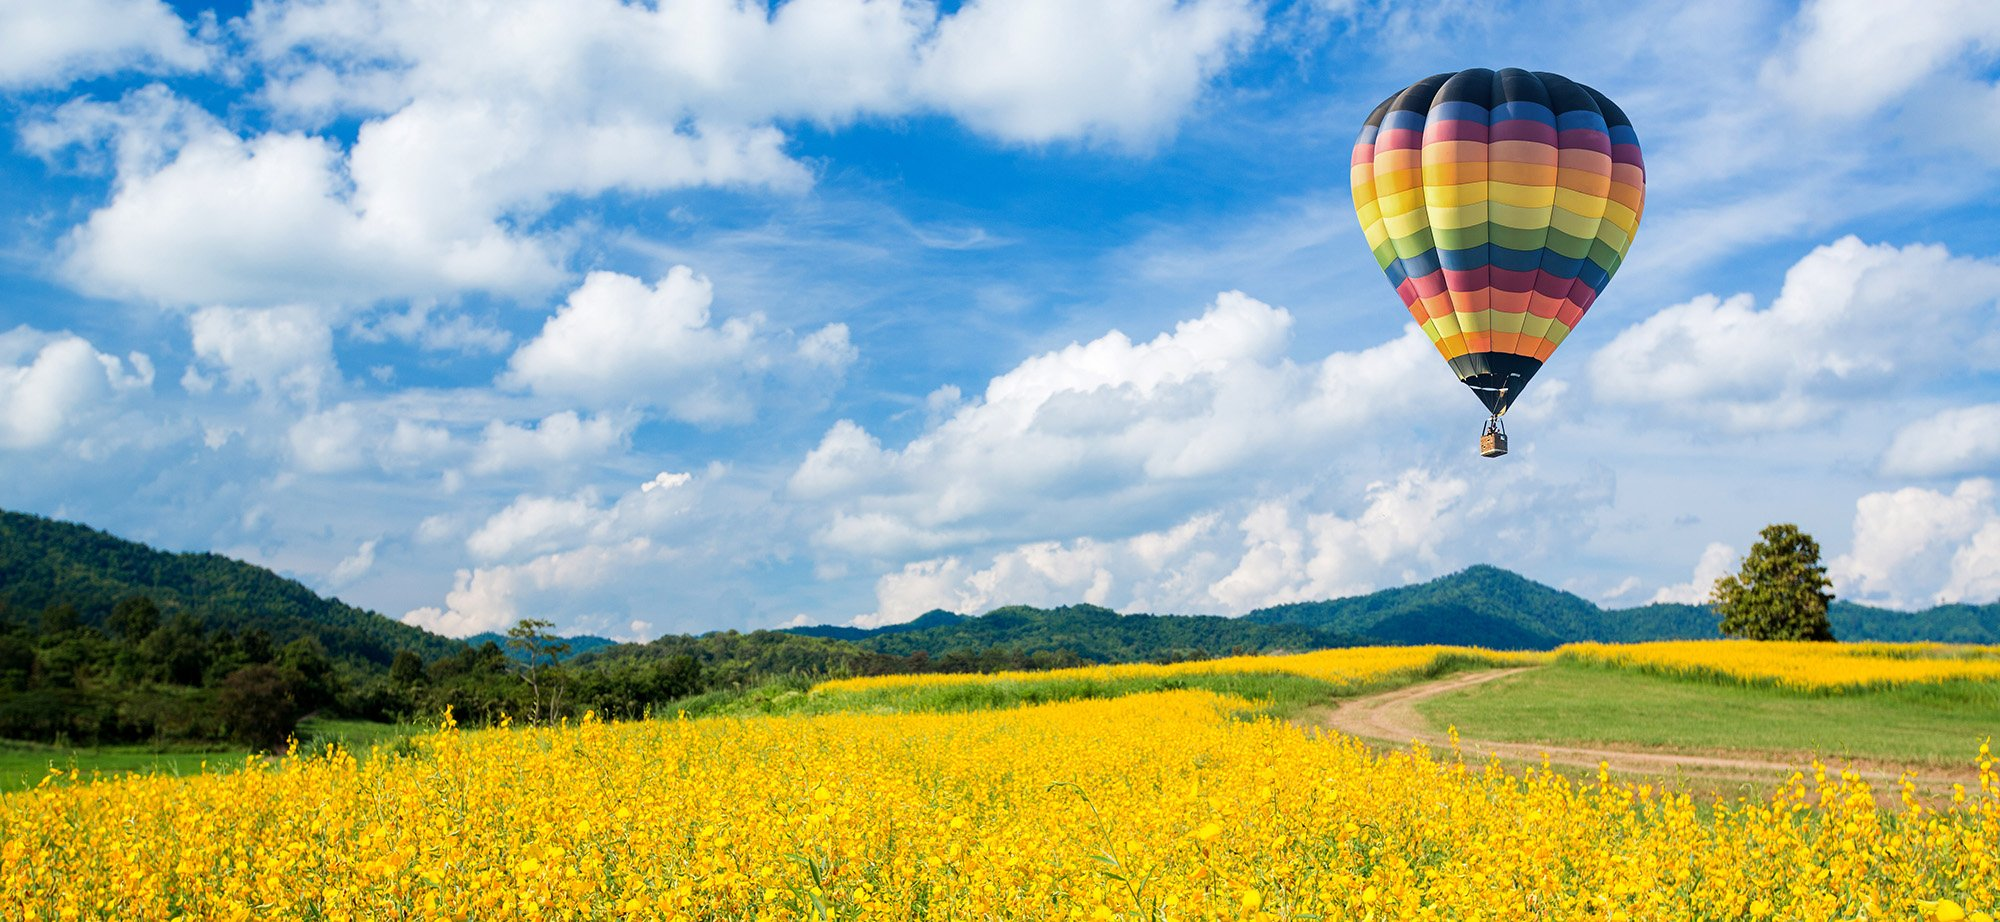 hot air balloon over field with clouds in sky